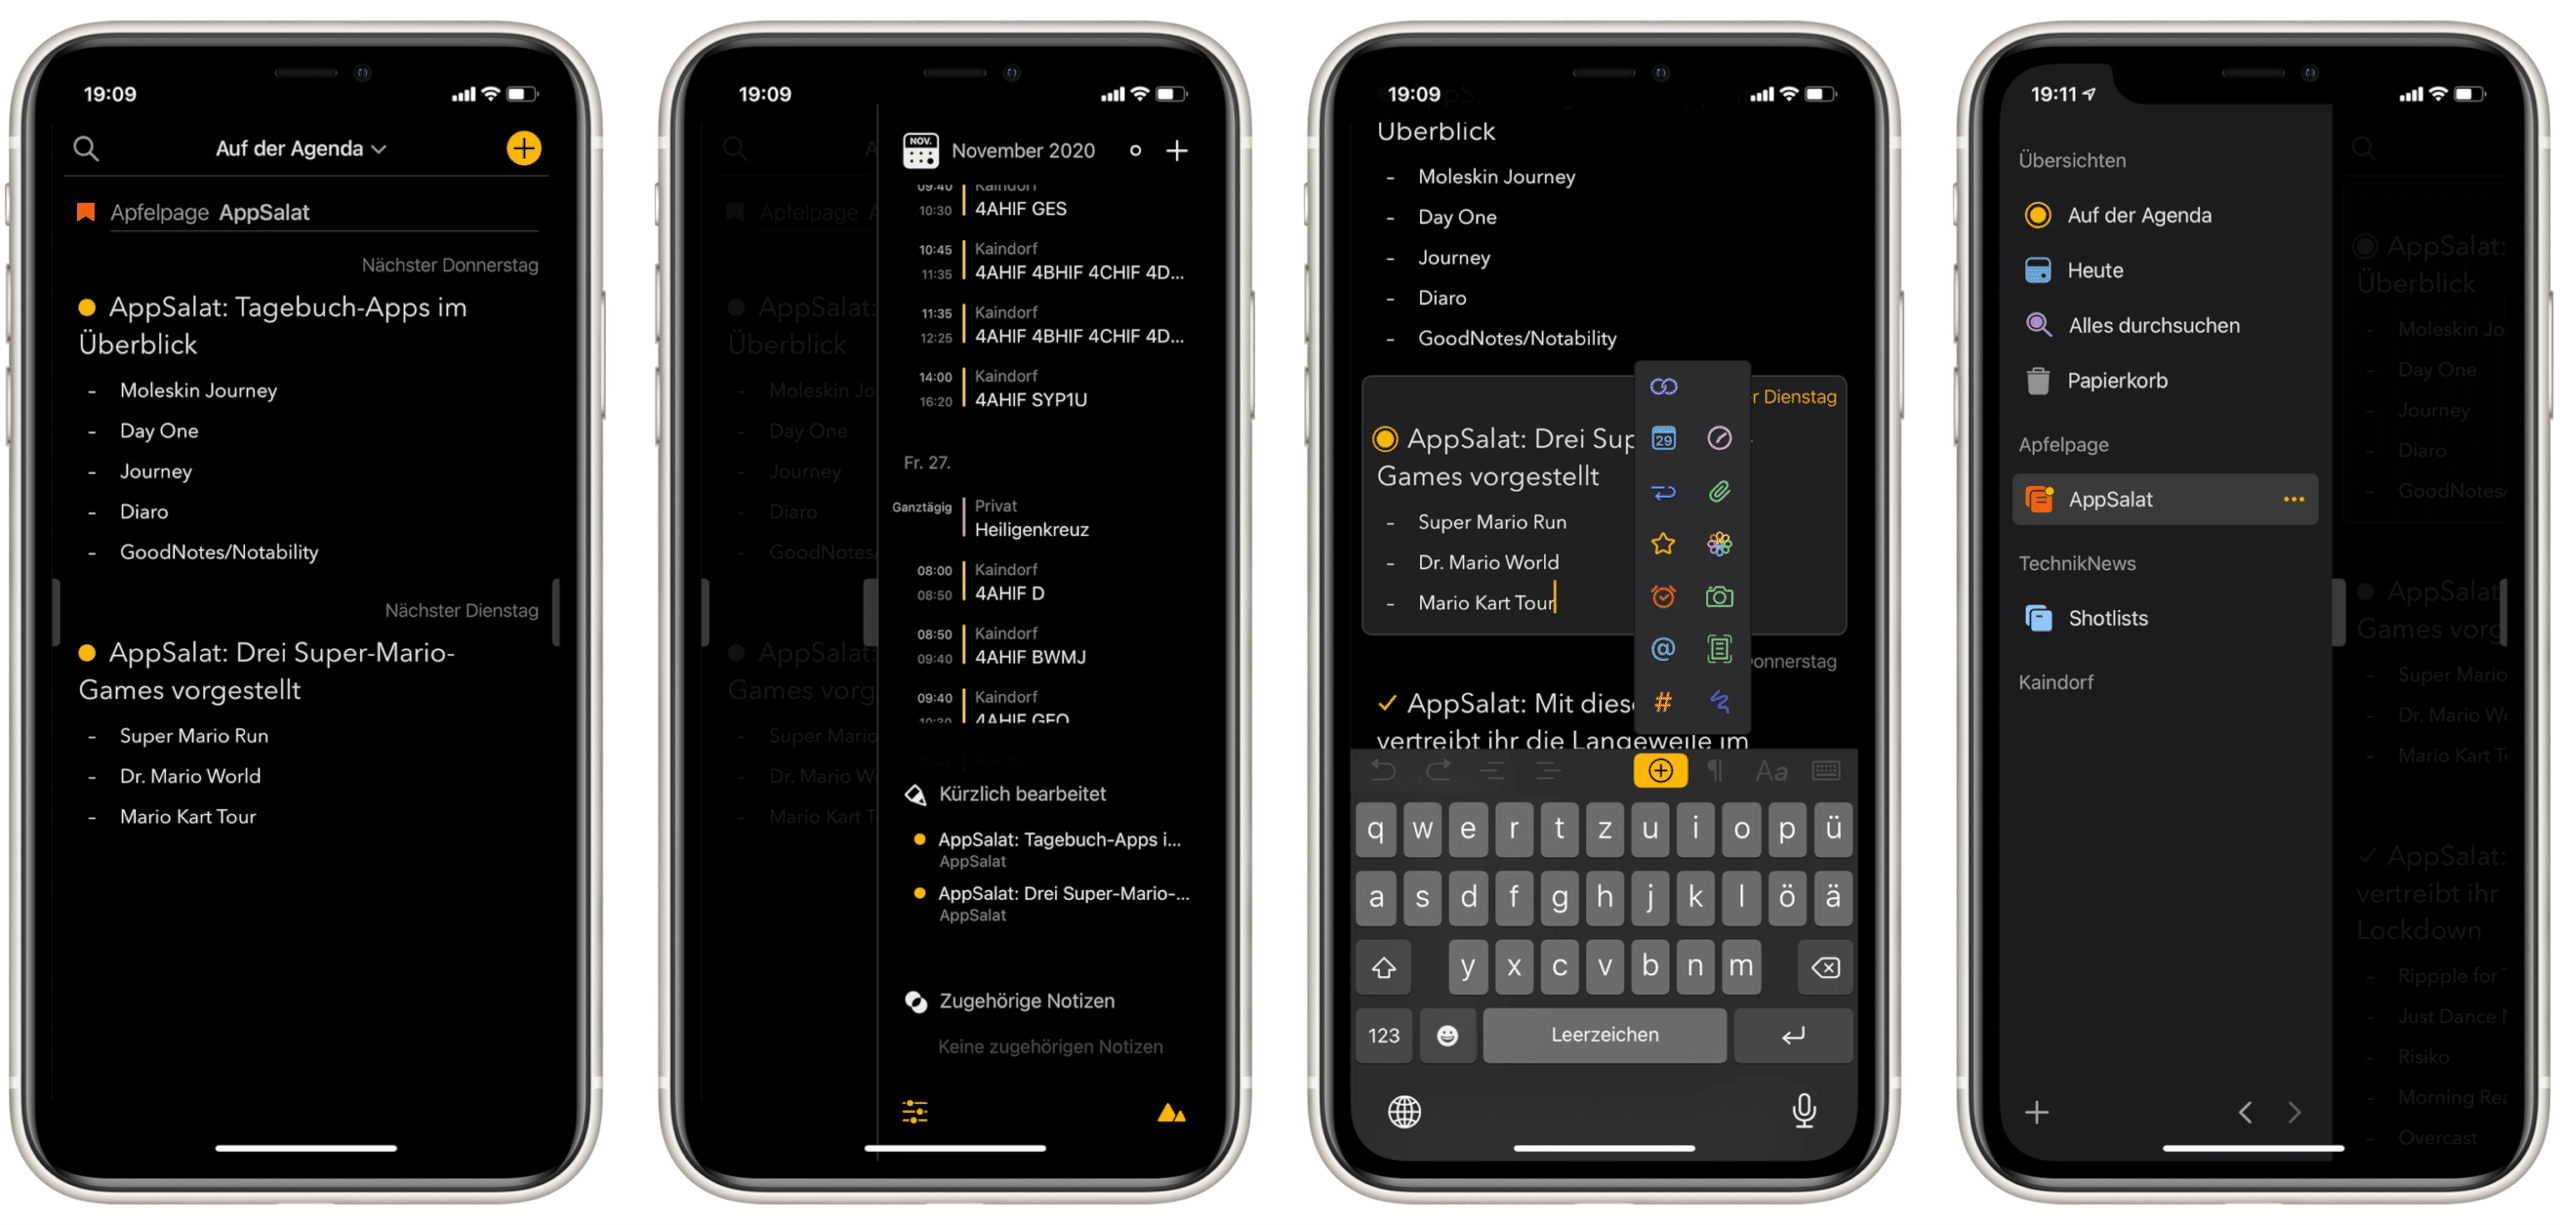 TOP 5 features of the notes app (+ competition for the full version)